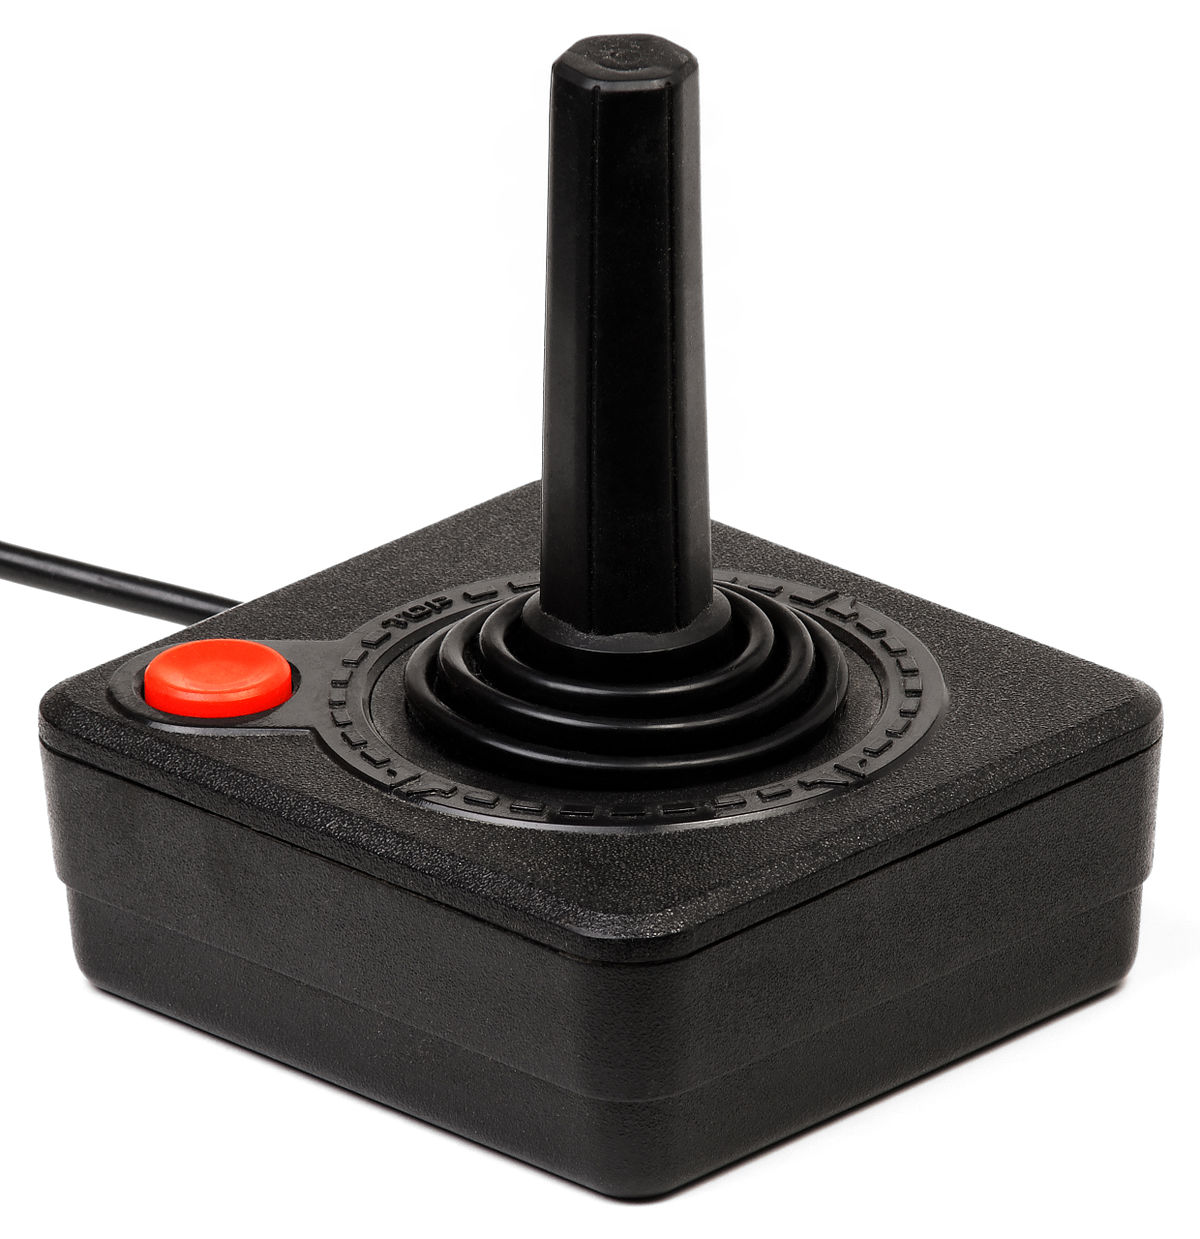 1200px Atari 2600 Joystick atari cx40 joystick wikipedia  at panicattacktreatment.co